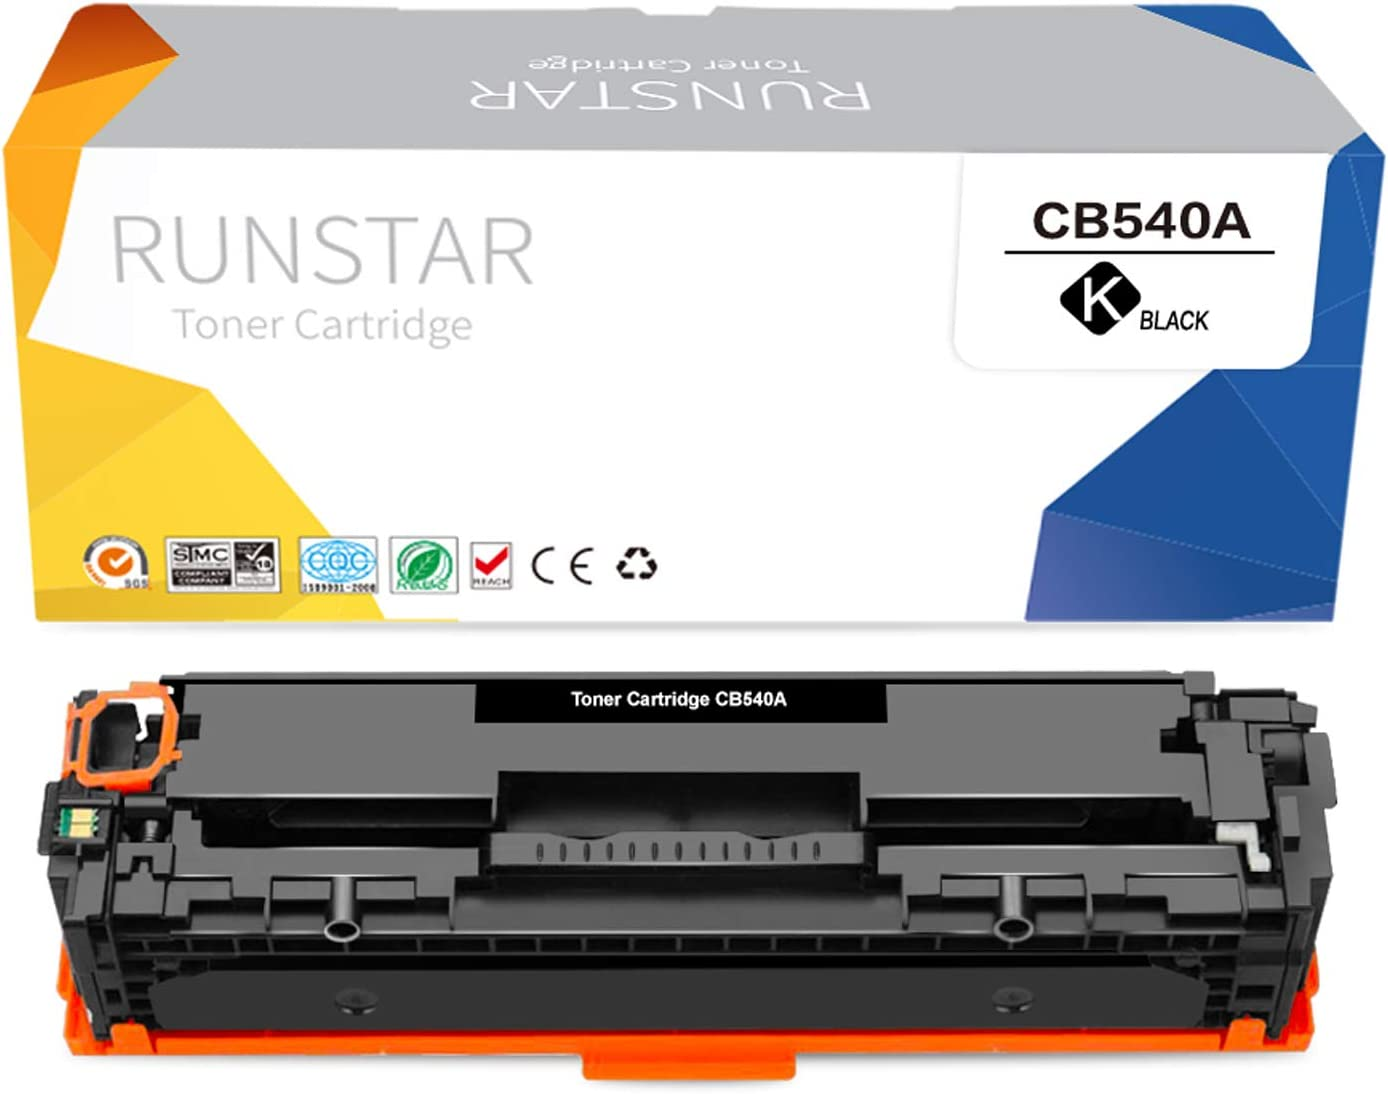 Run Star Compatible 125A Black Toner Cartridge Replacement for HP 125A CB540A Work for HP Color Laserjet MFP CP1215 CP1518ni CP1515n CM1312nfi CM1312 Printer, 1 Black